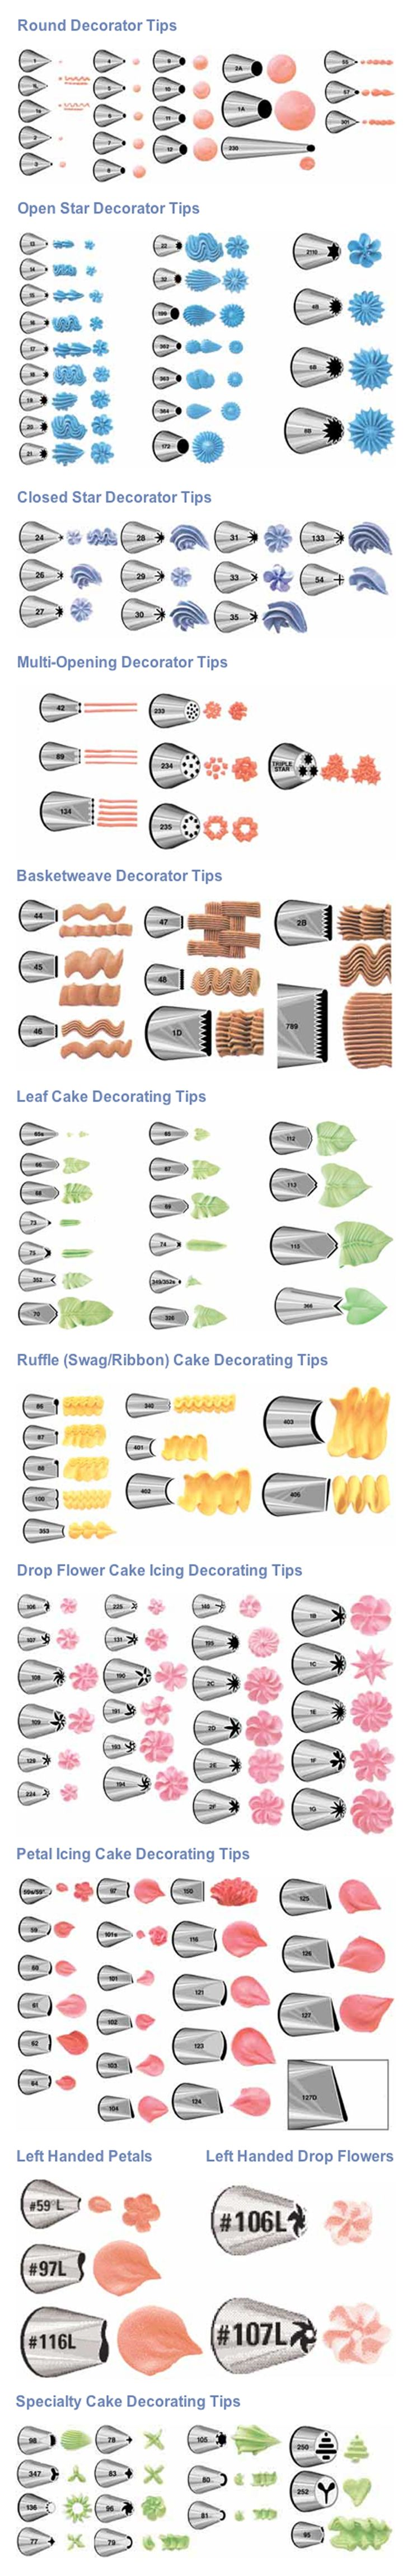 Can't get many more icing tips than this! Practice enough and you can decorate any cake or cupcake!